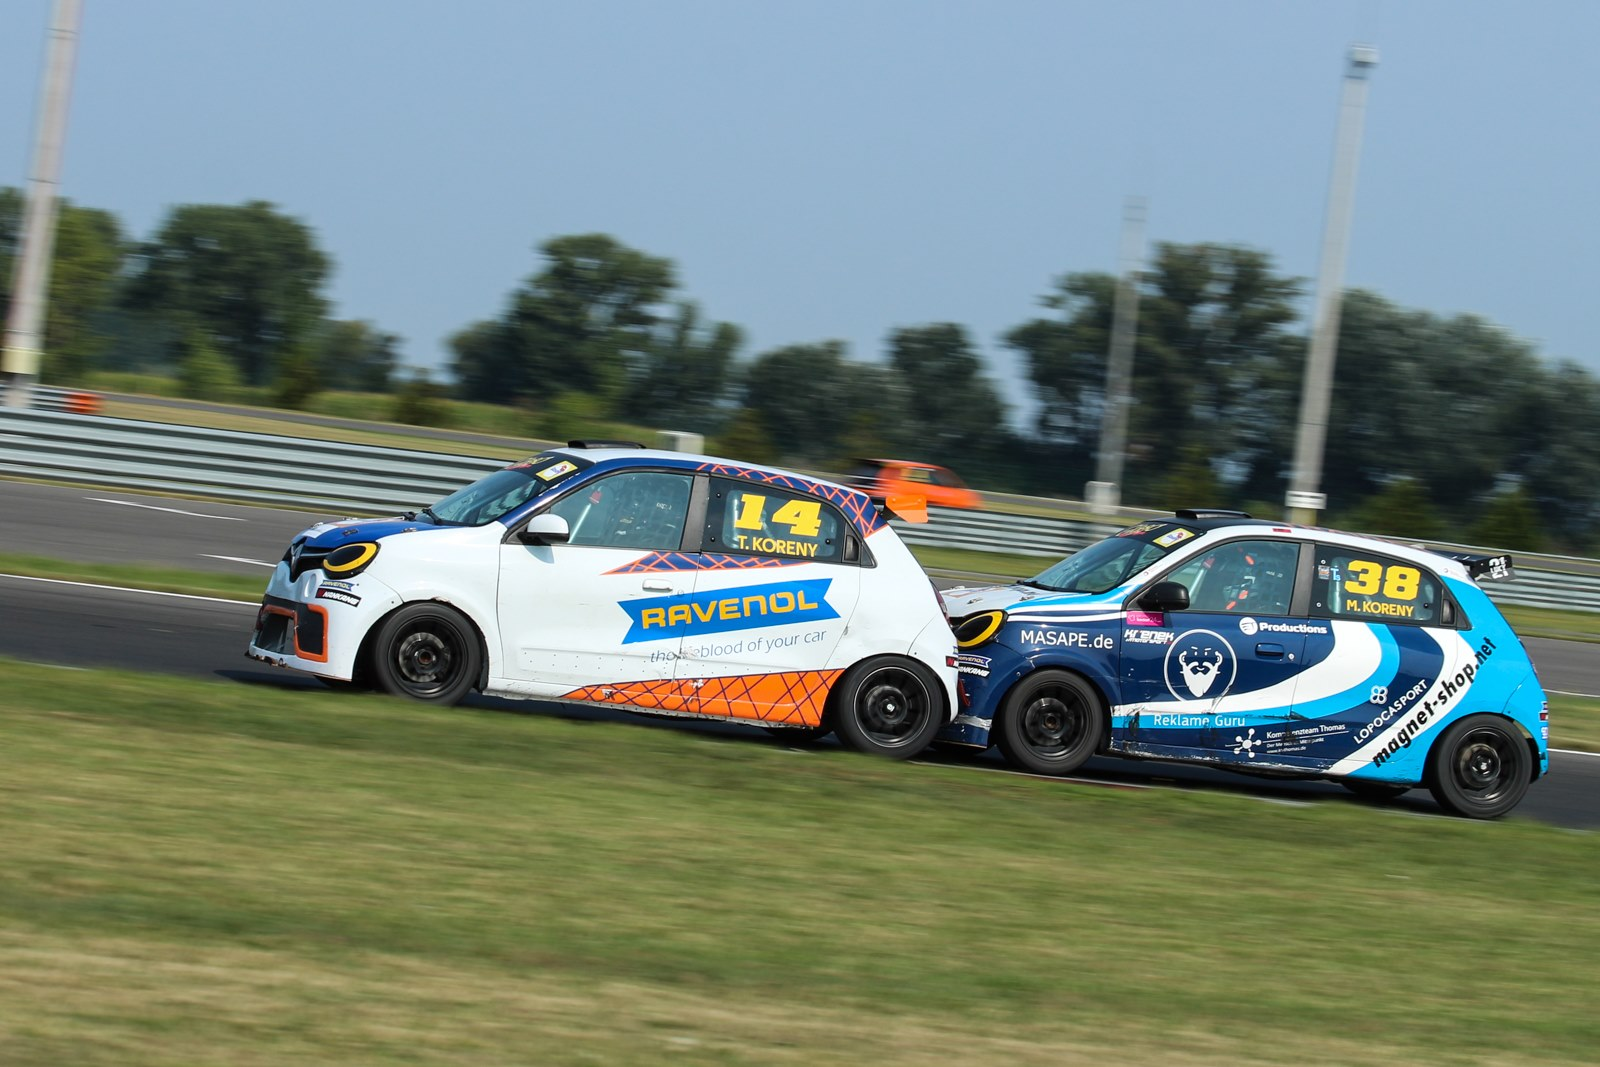 Matěj Korený takes his first win in Twingo Cup